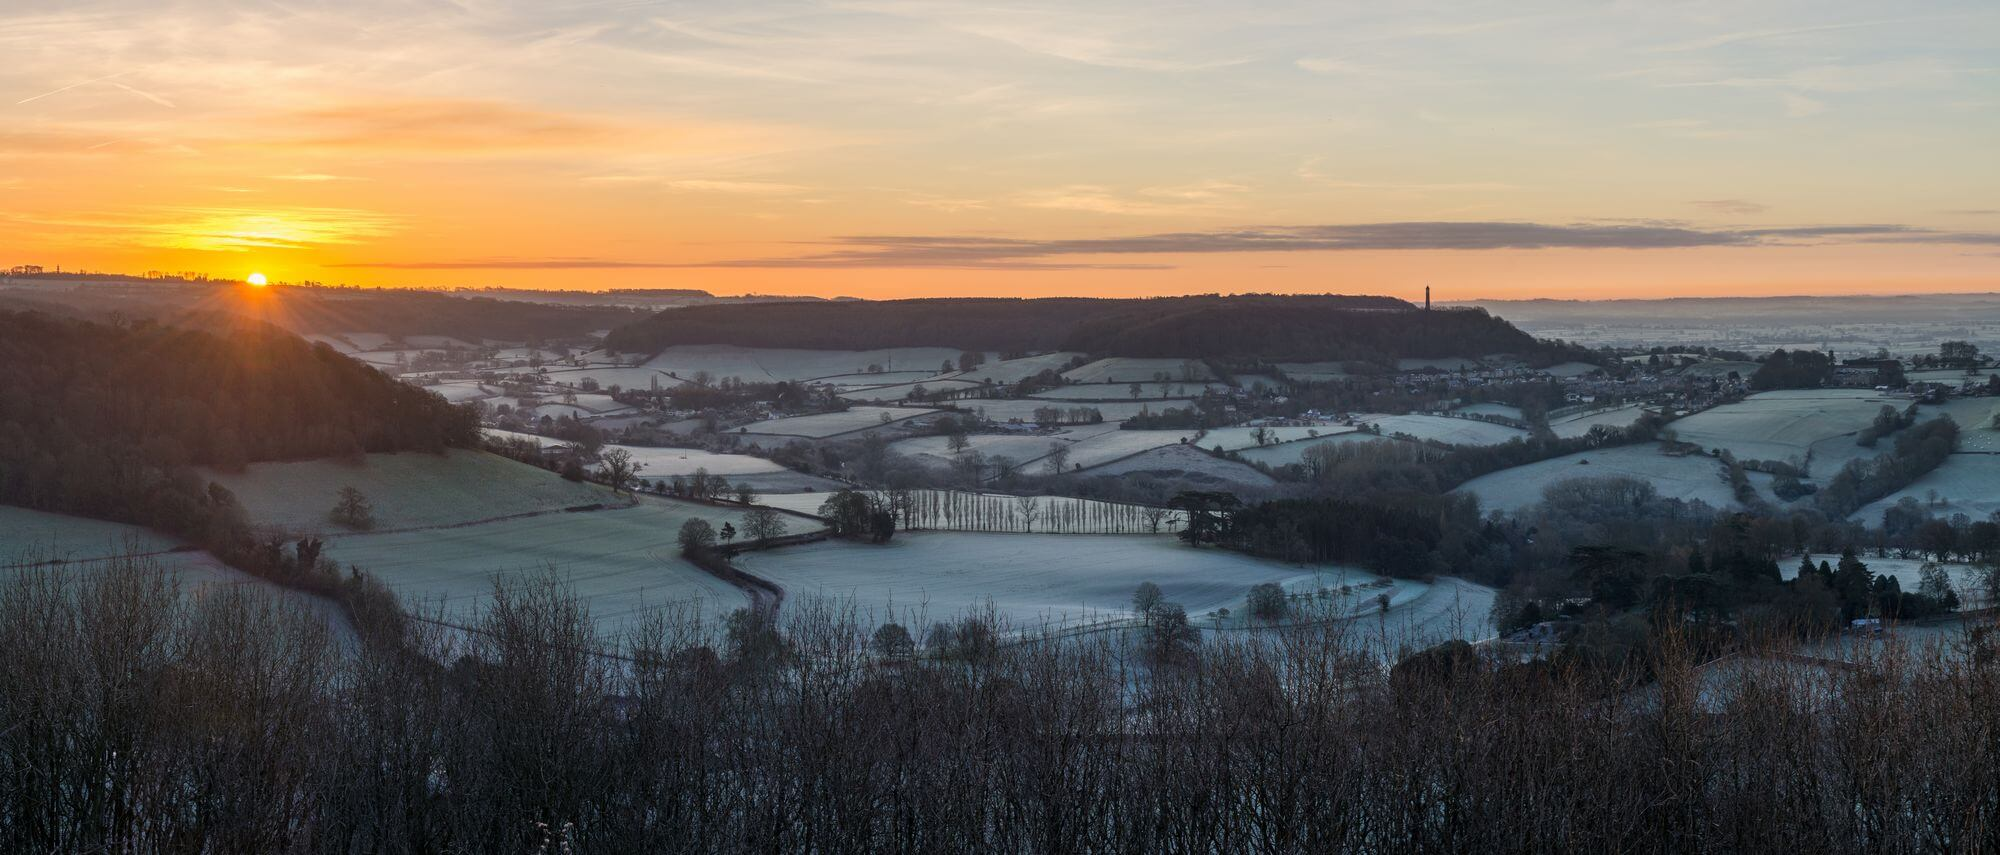 Frosty Hills of the Cotswolds